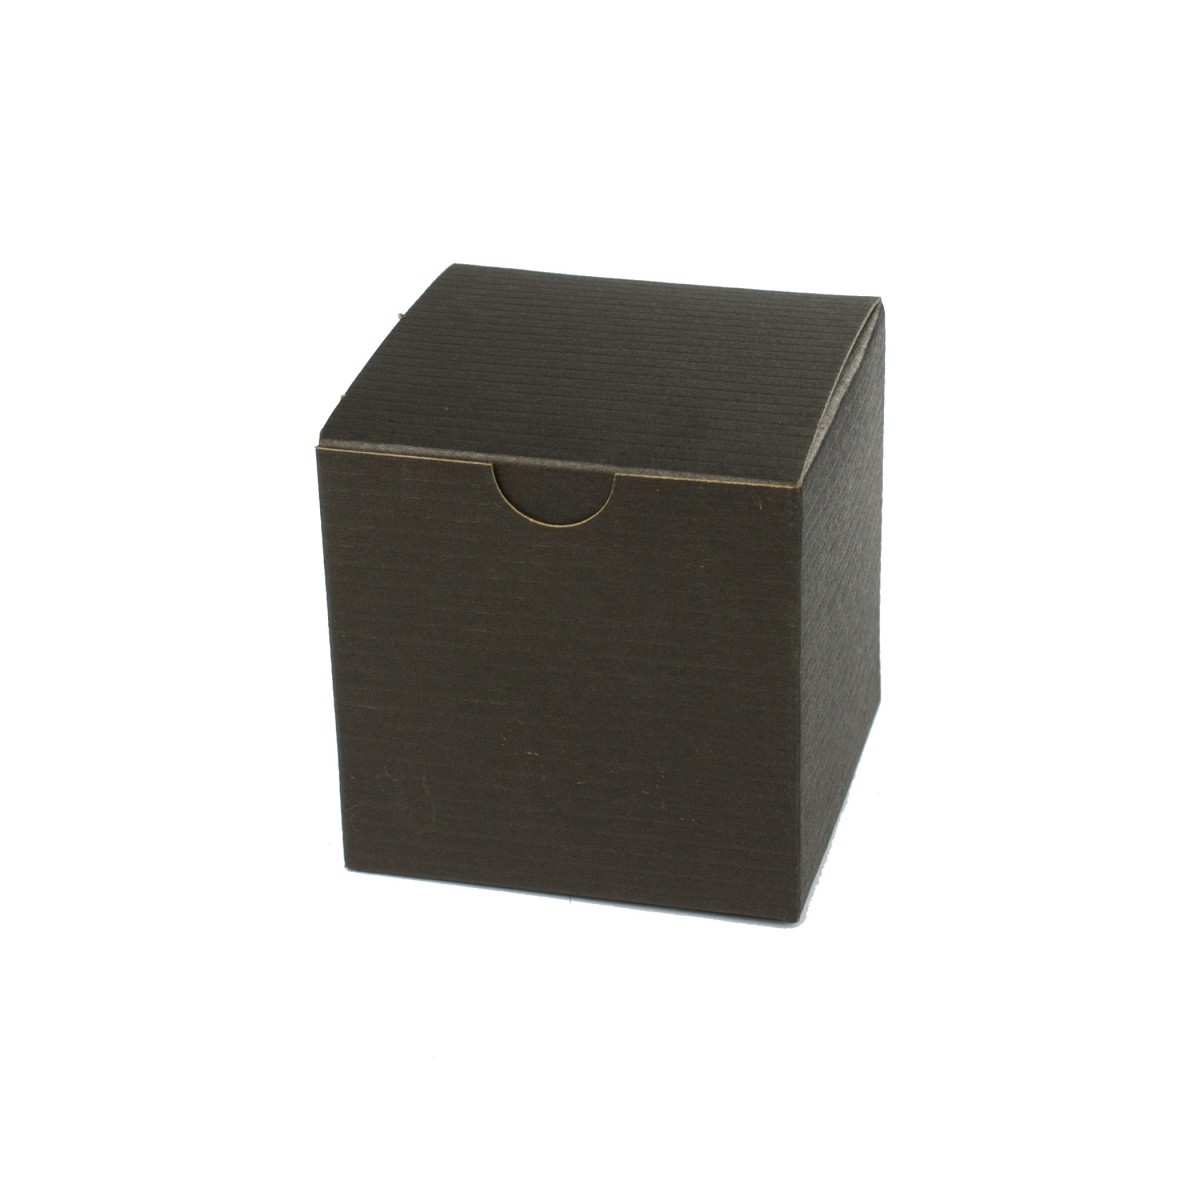 3 x 3 x 3 BLACK PINSTRIPE TUCK-TOP GIFT BOXES